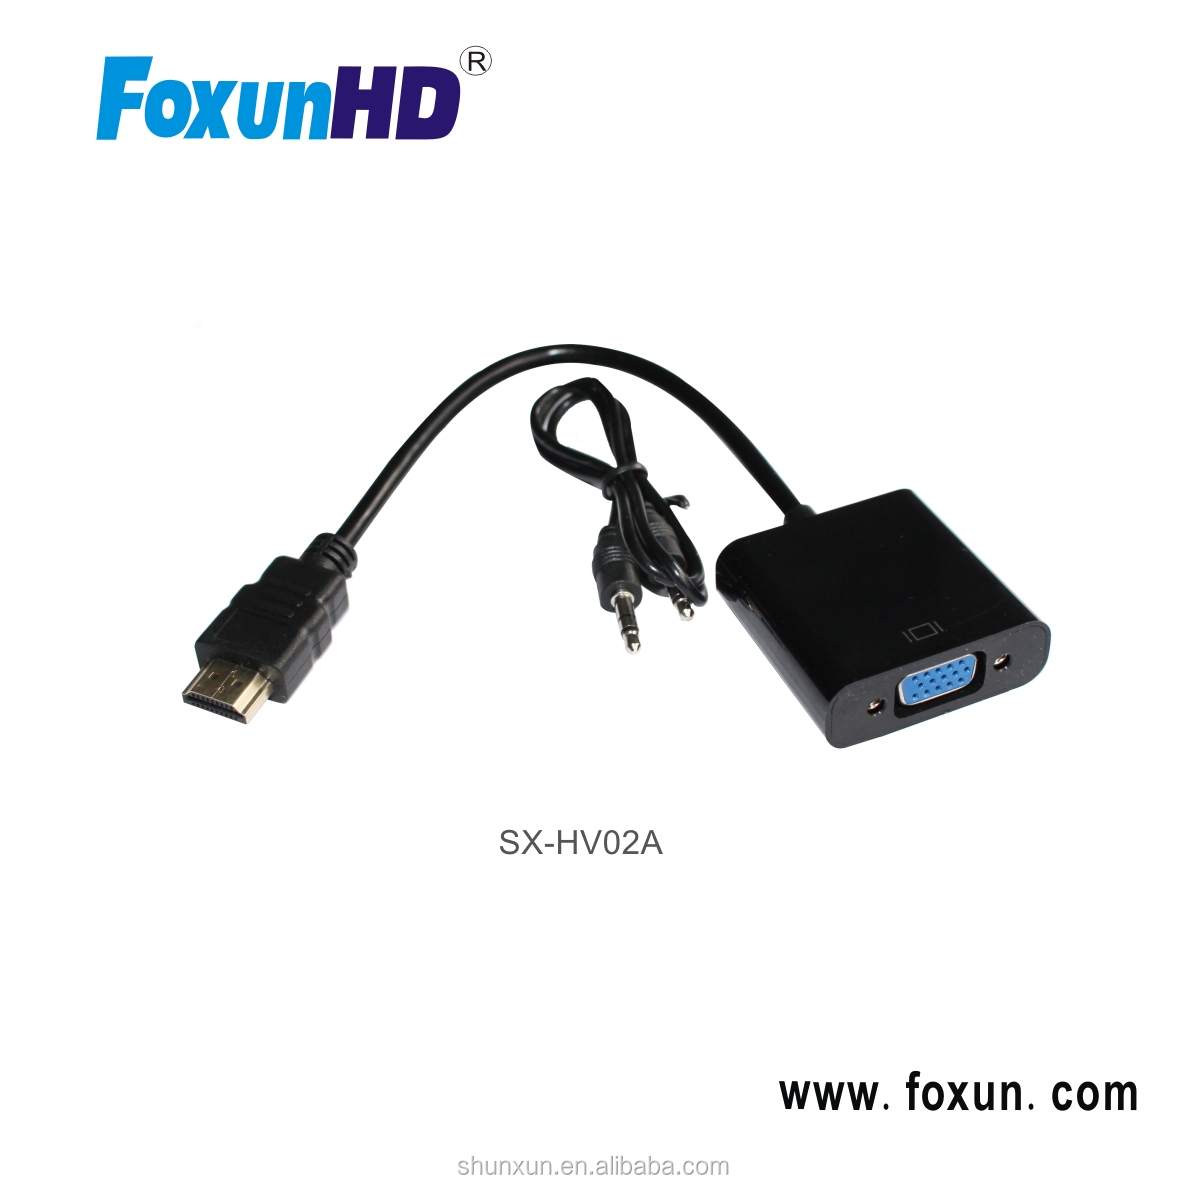 Foxun SX-HV02A HDMI to VGA Converter box with power support 1080p